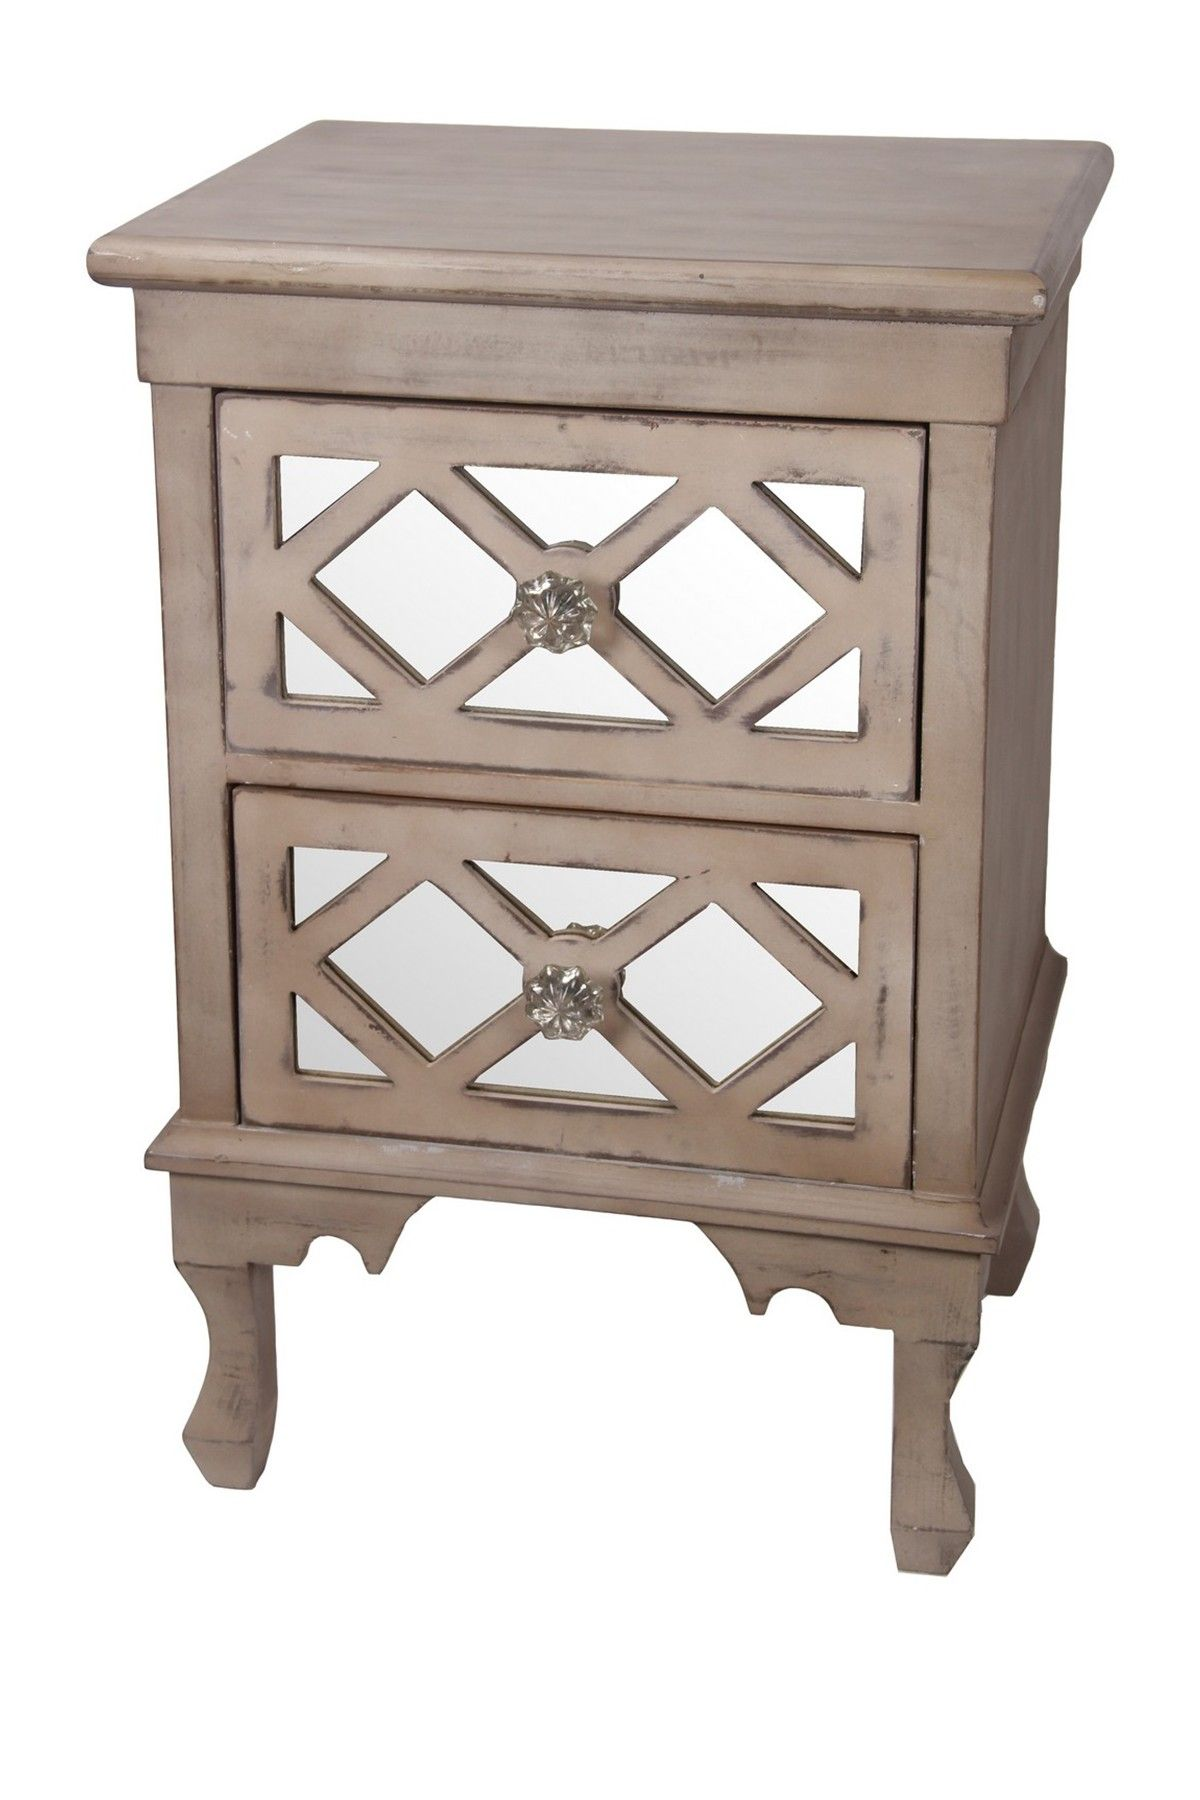 Mirrored Two Drawer Chest Side Table By Privilege Home Decor On  @nordstrom_rack